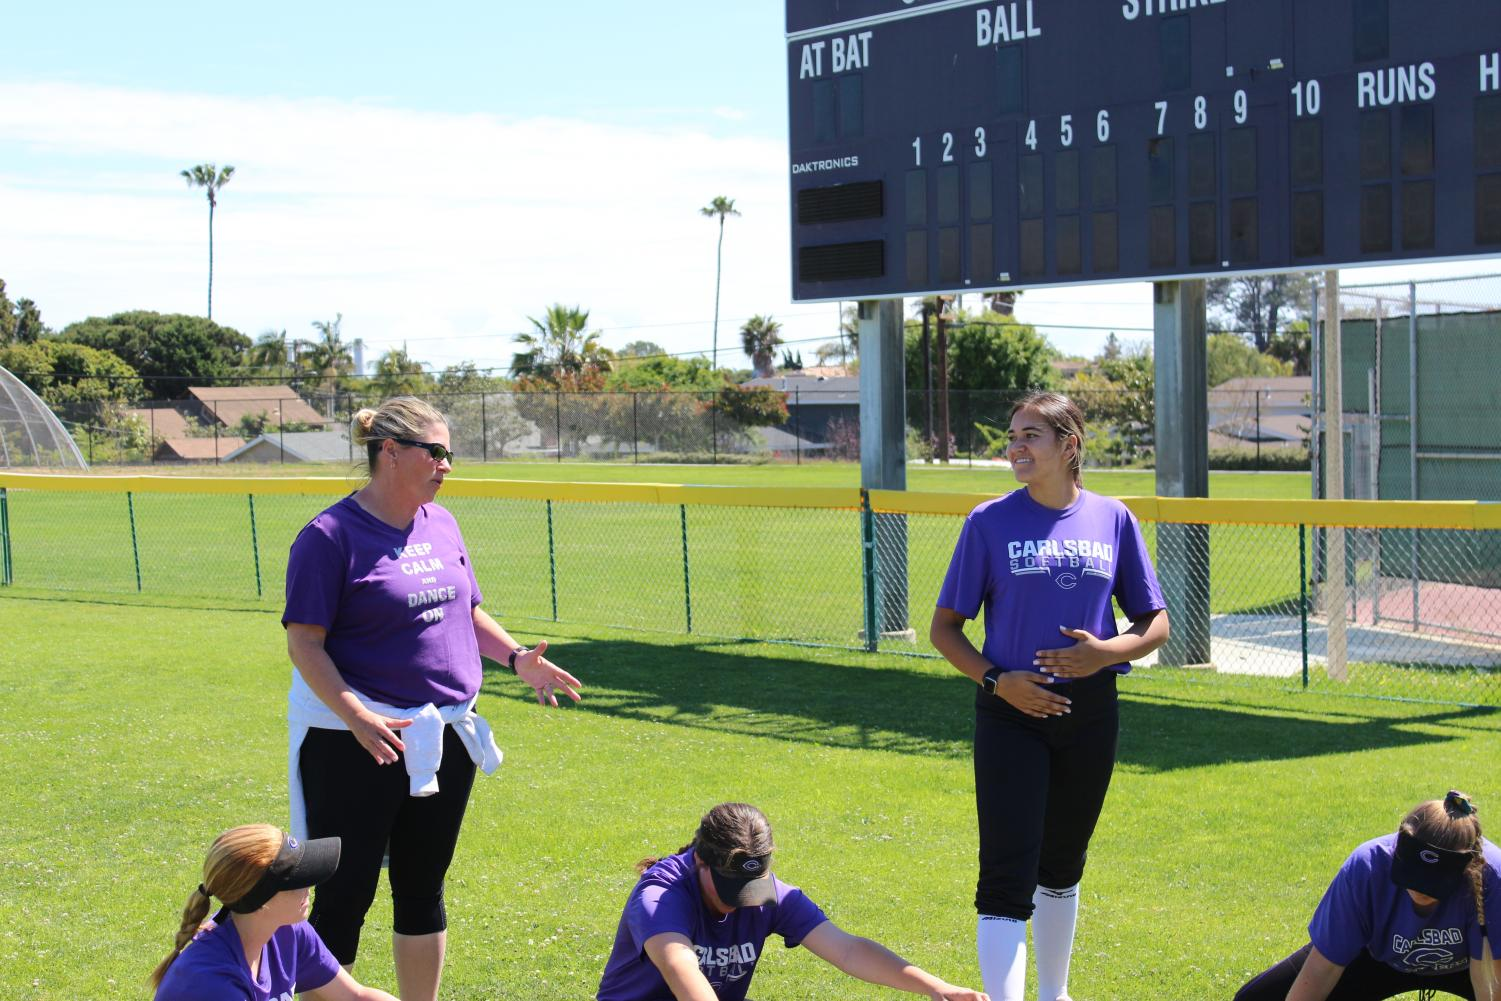 Mrs. Waters (left) gives her team a pep talk while they stretch before their 2-hour practice. Senior Alanna Nelson-Thiede (right) listens intently.